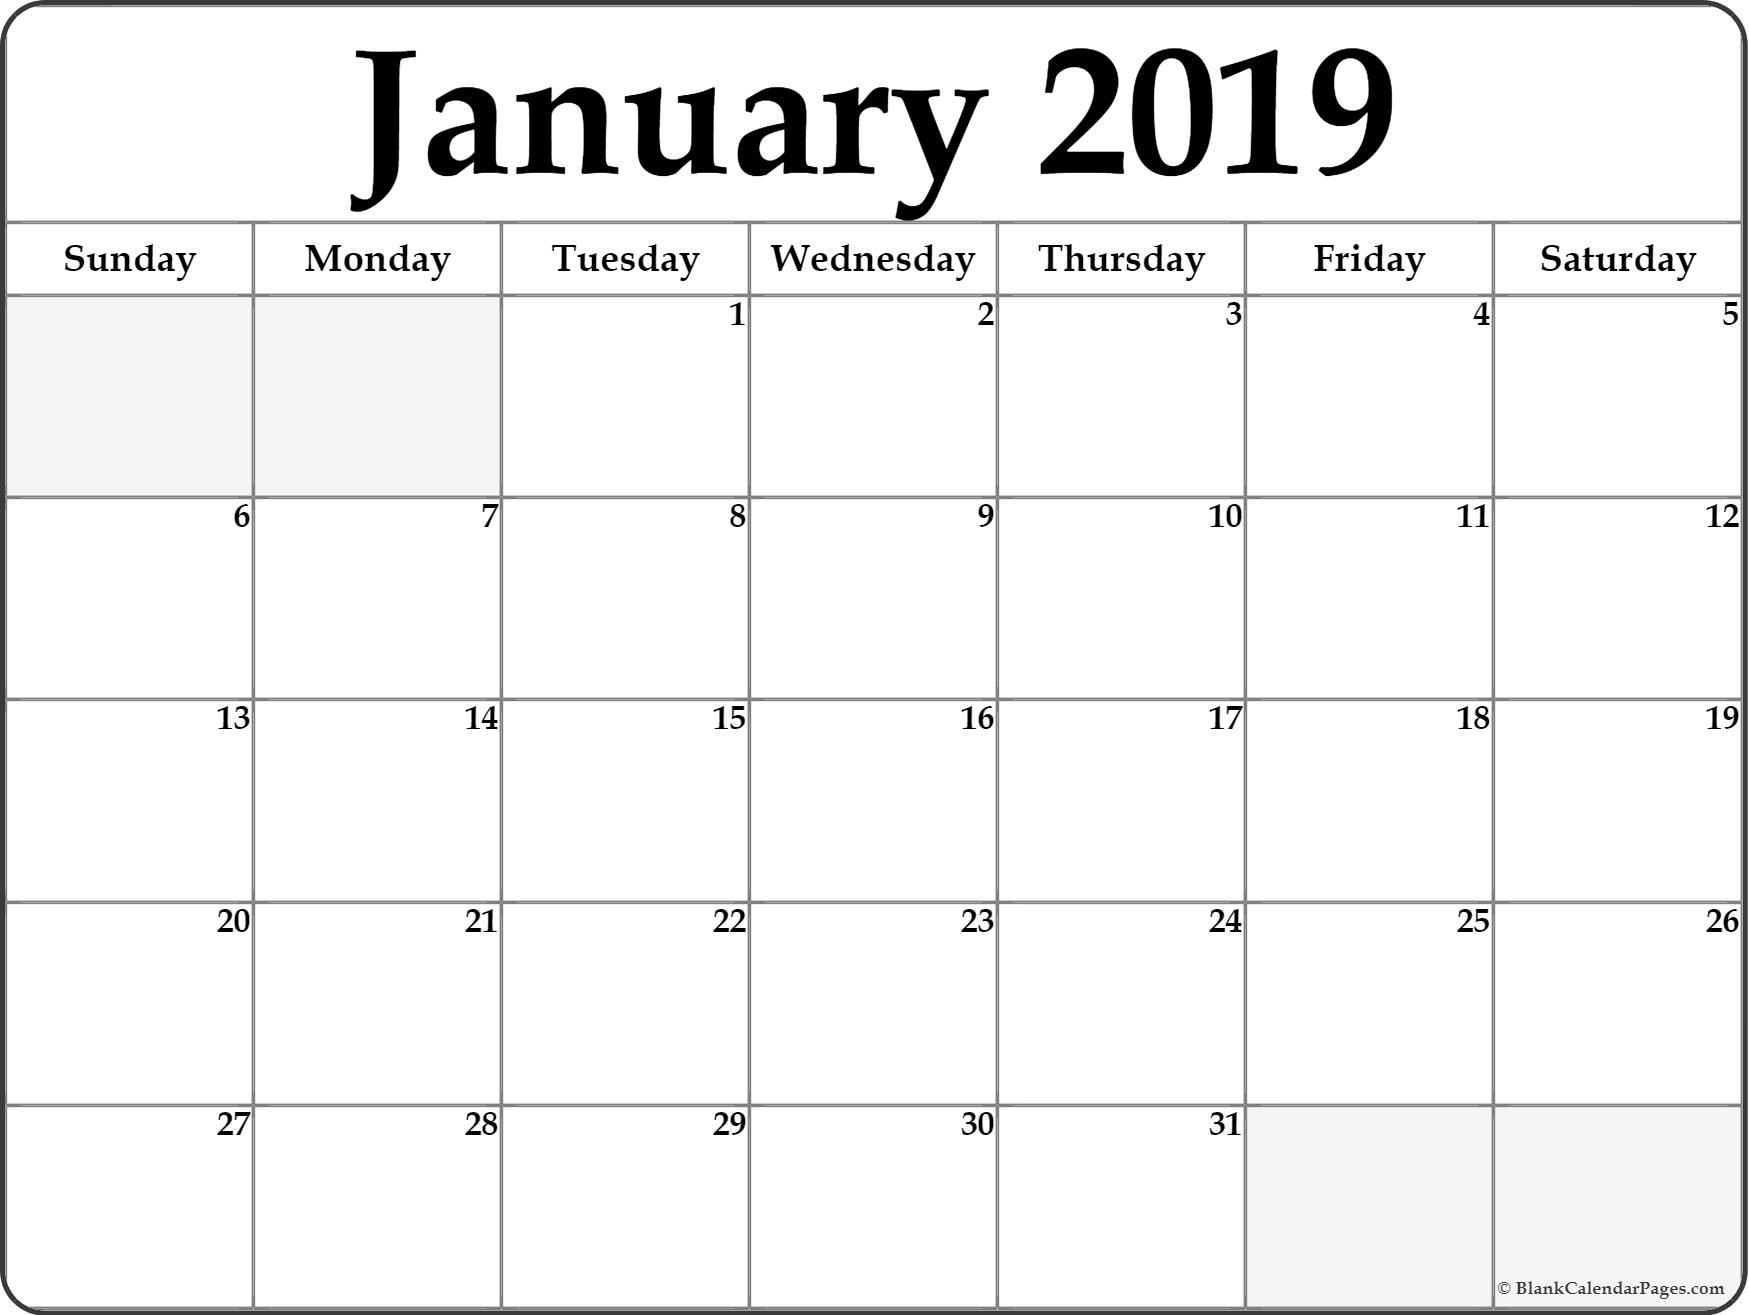 January 2019 Calendar | Free Printable Monthly Calendars-Blank Calendar Page Printable